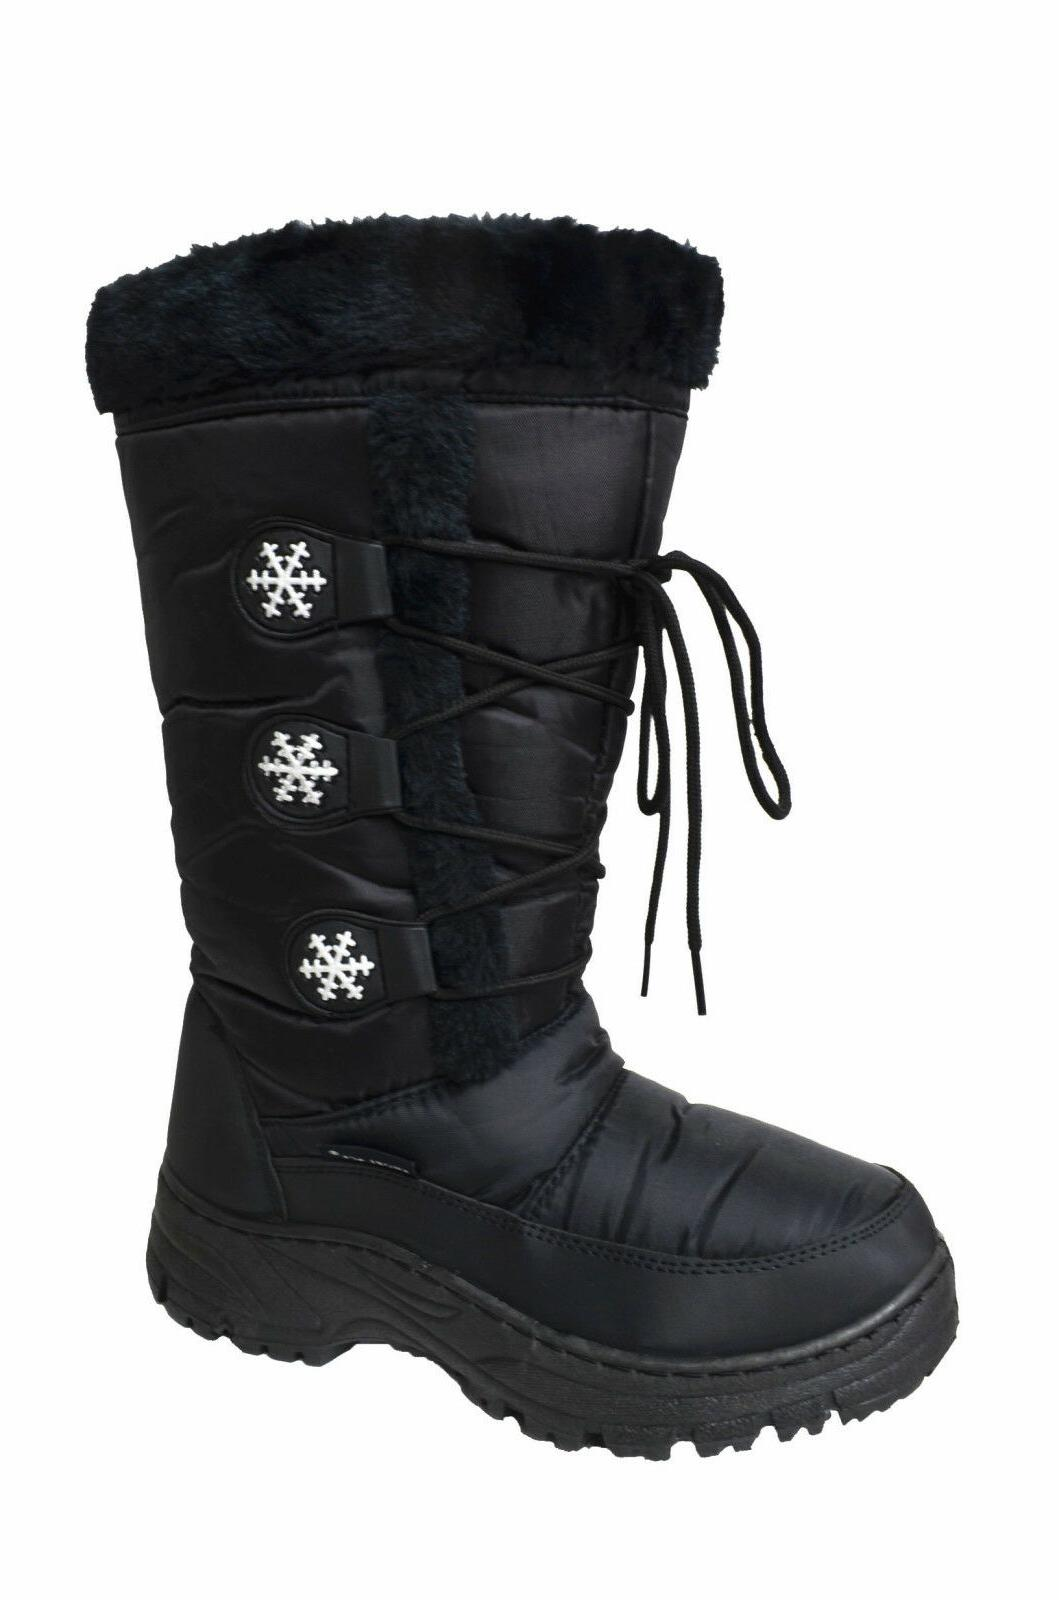 Women's Water Resistant Insulated Winter Snow Boots Fleece L